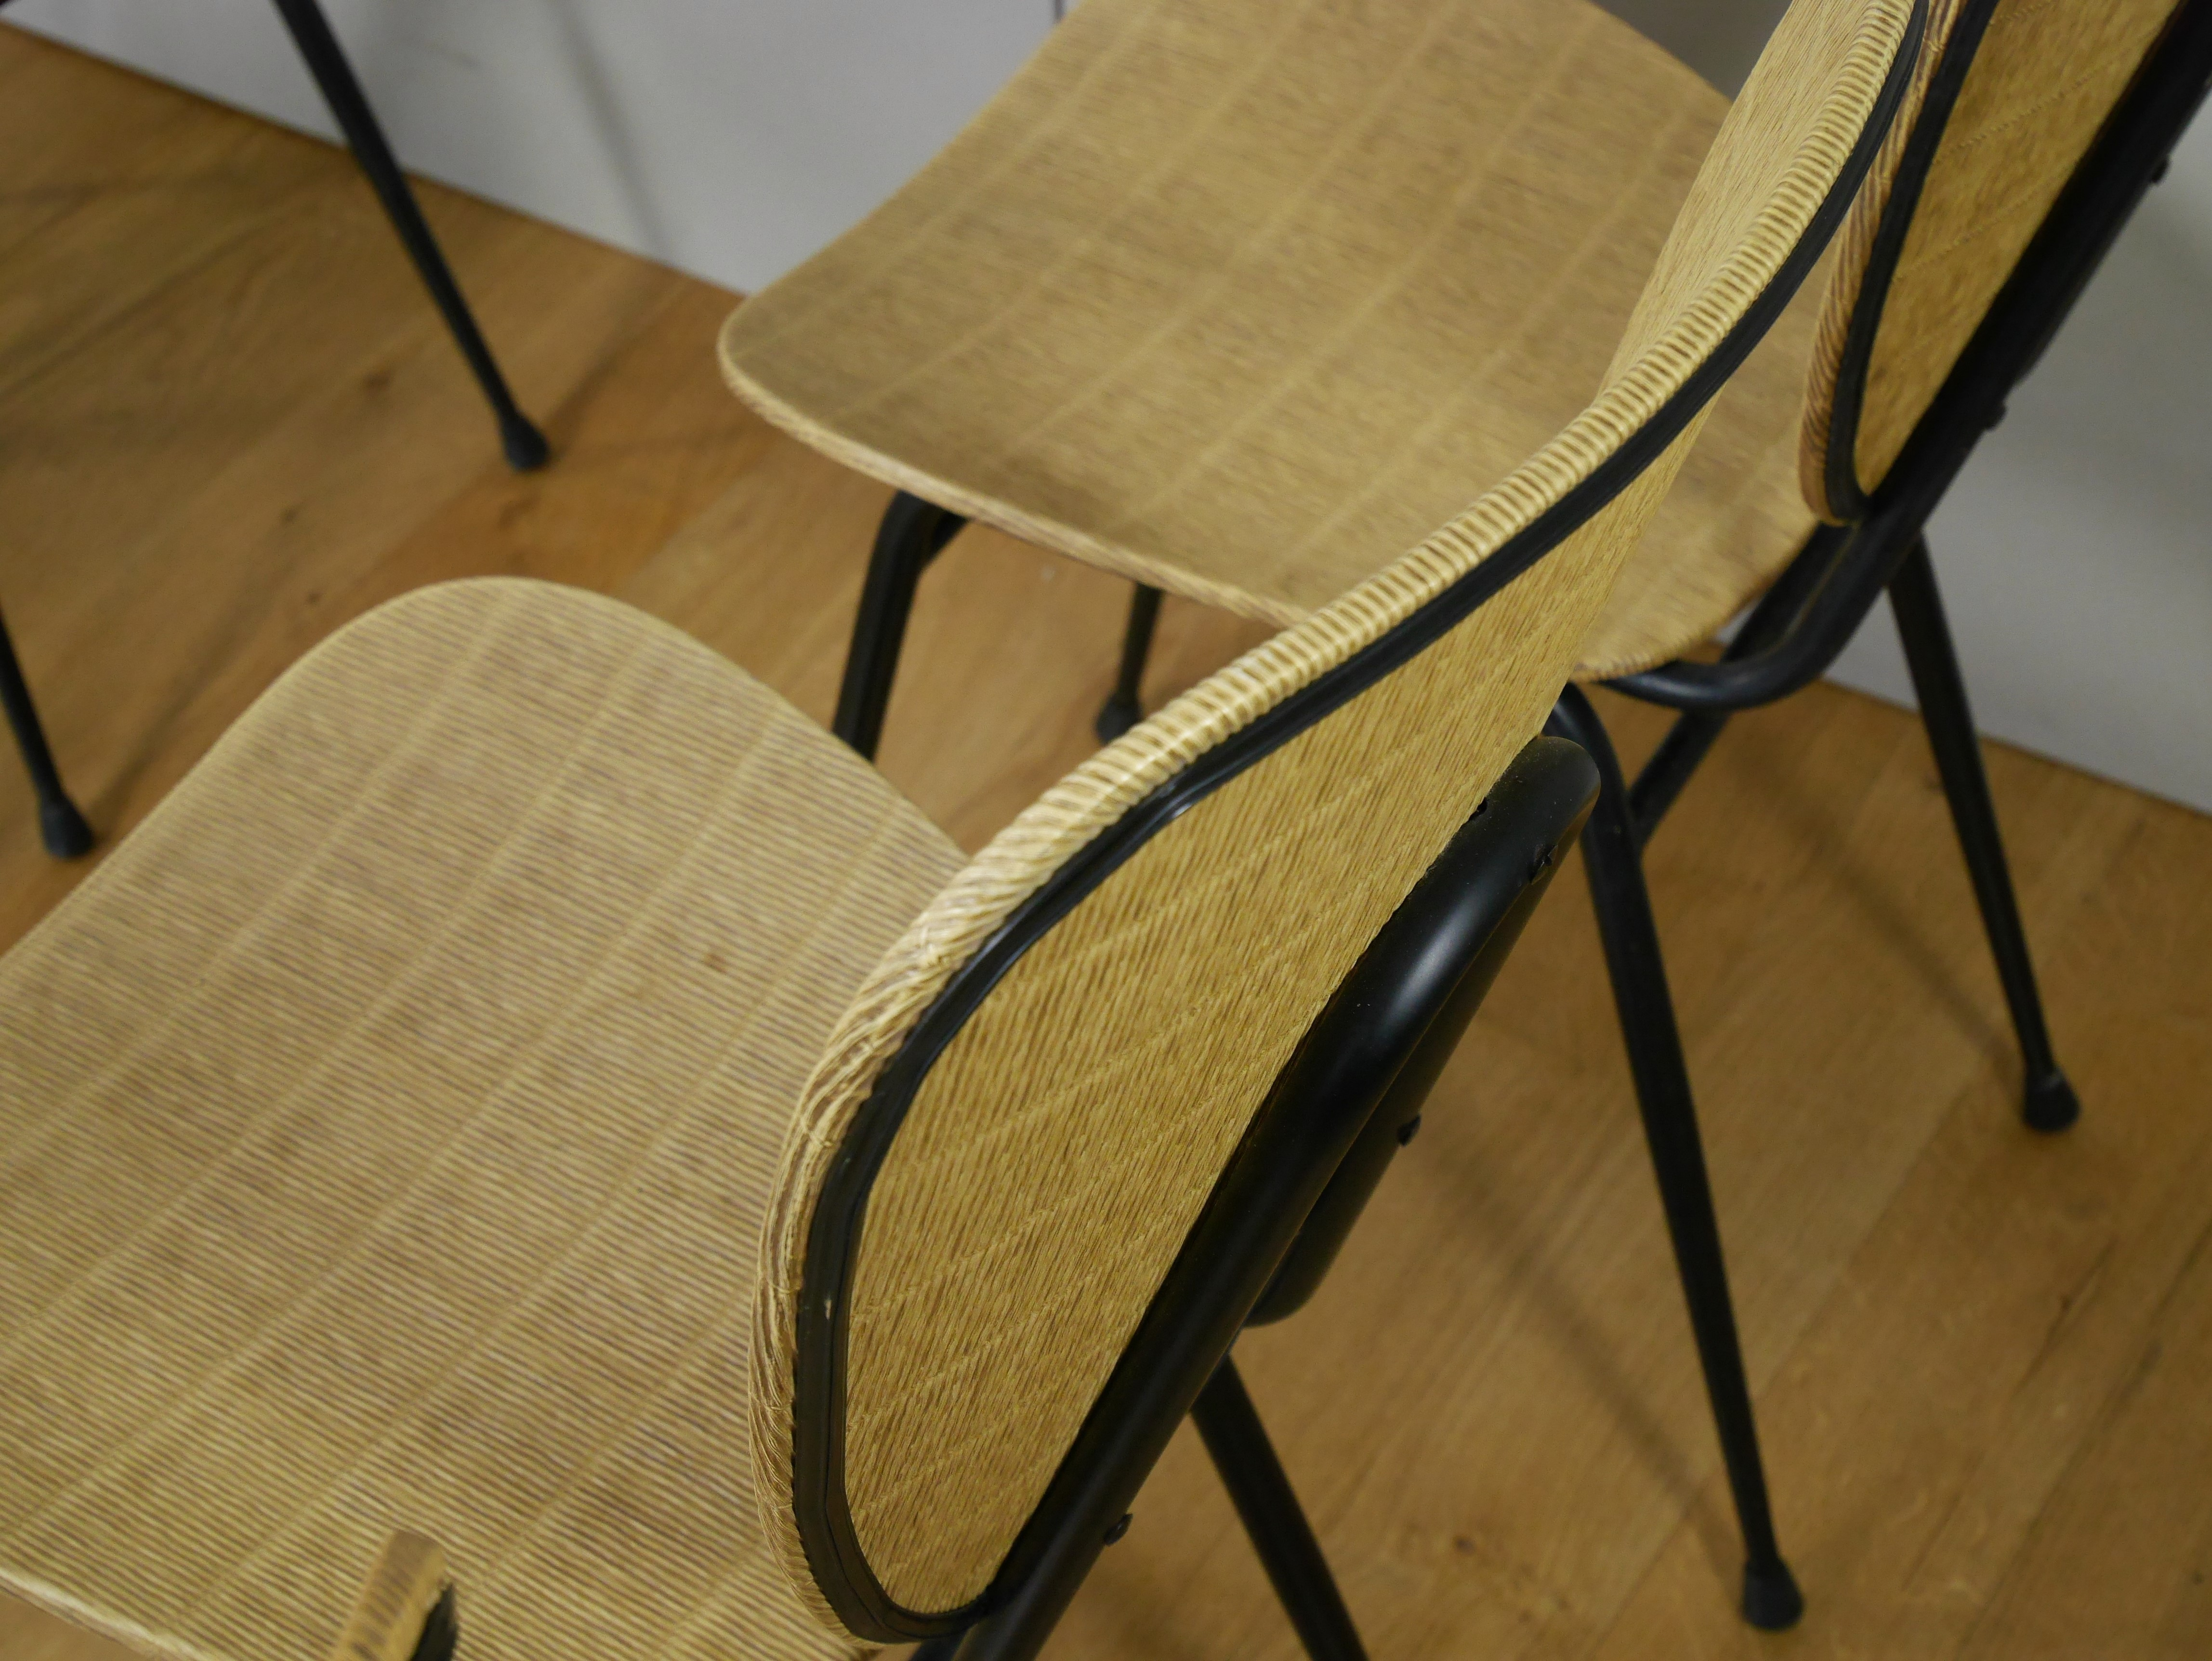 Set of 6 mid century design chairs 1950 Design Market